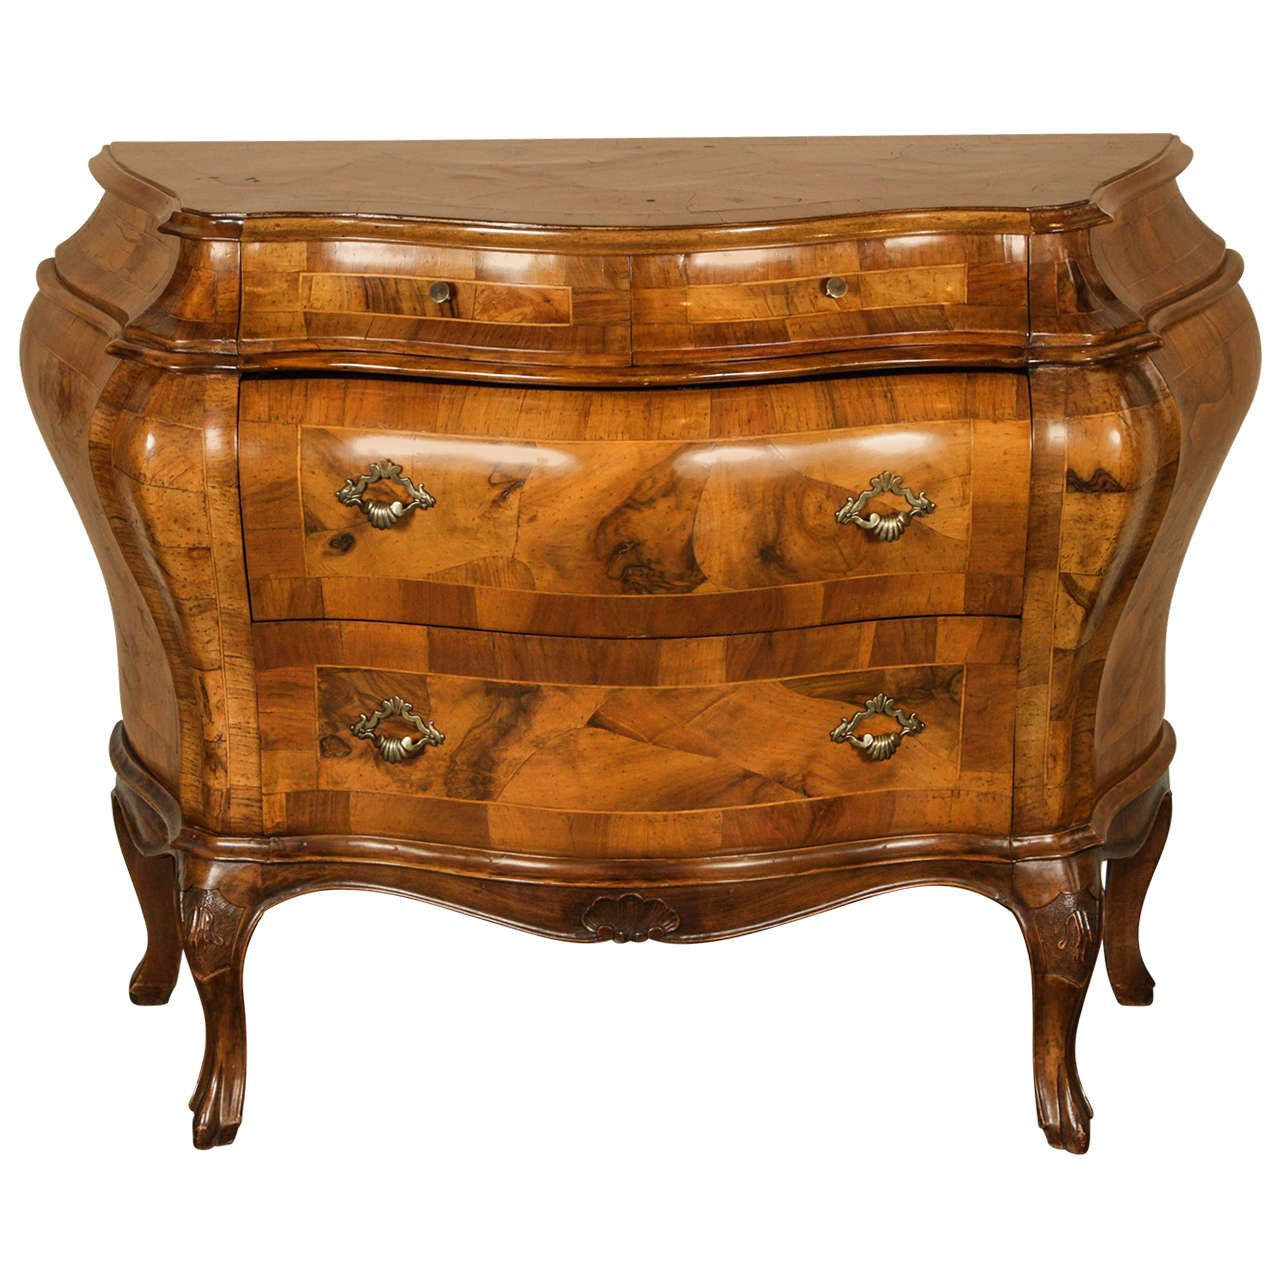 Pin On Antique Furniture Old Furniture Rustic Furniture Bombay chests for sale used